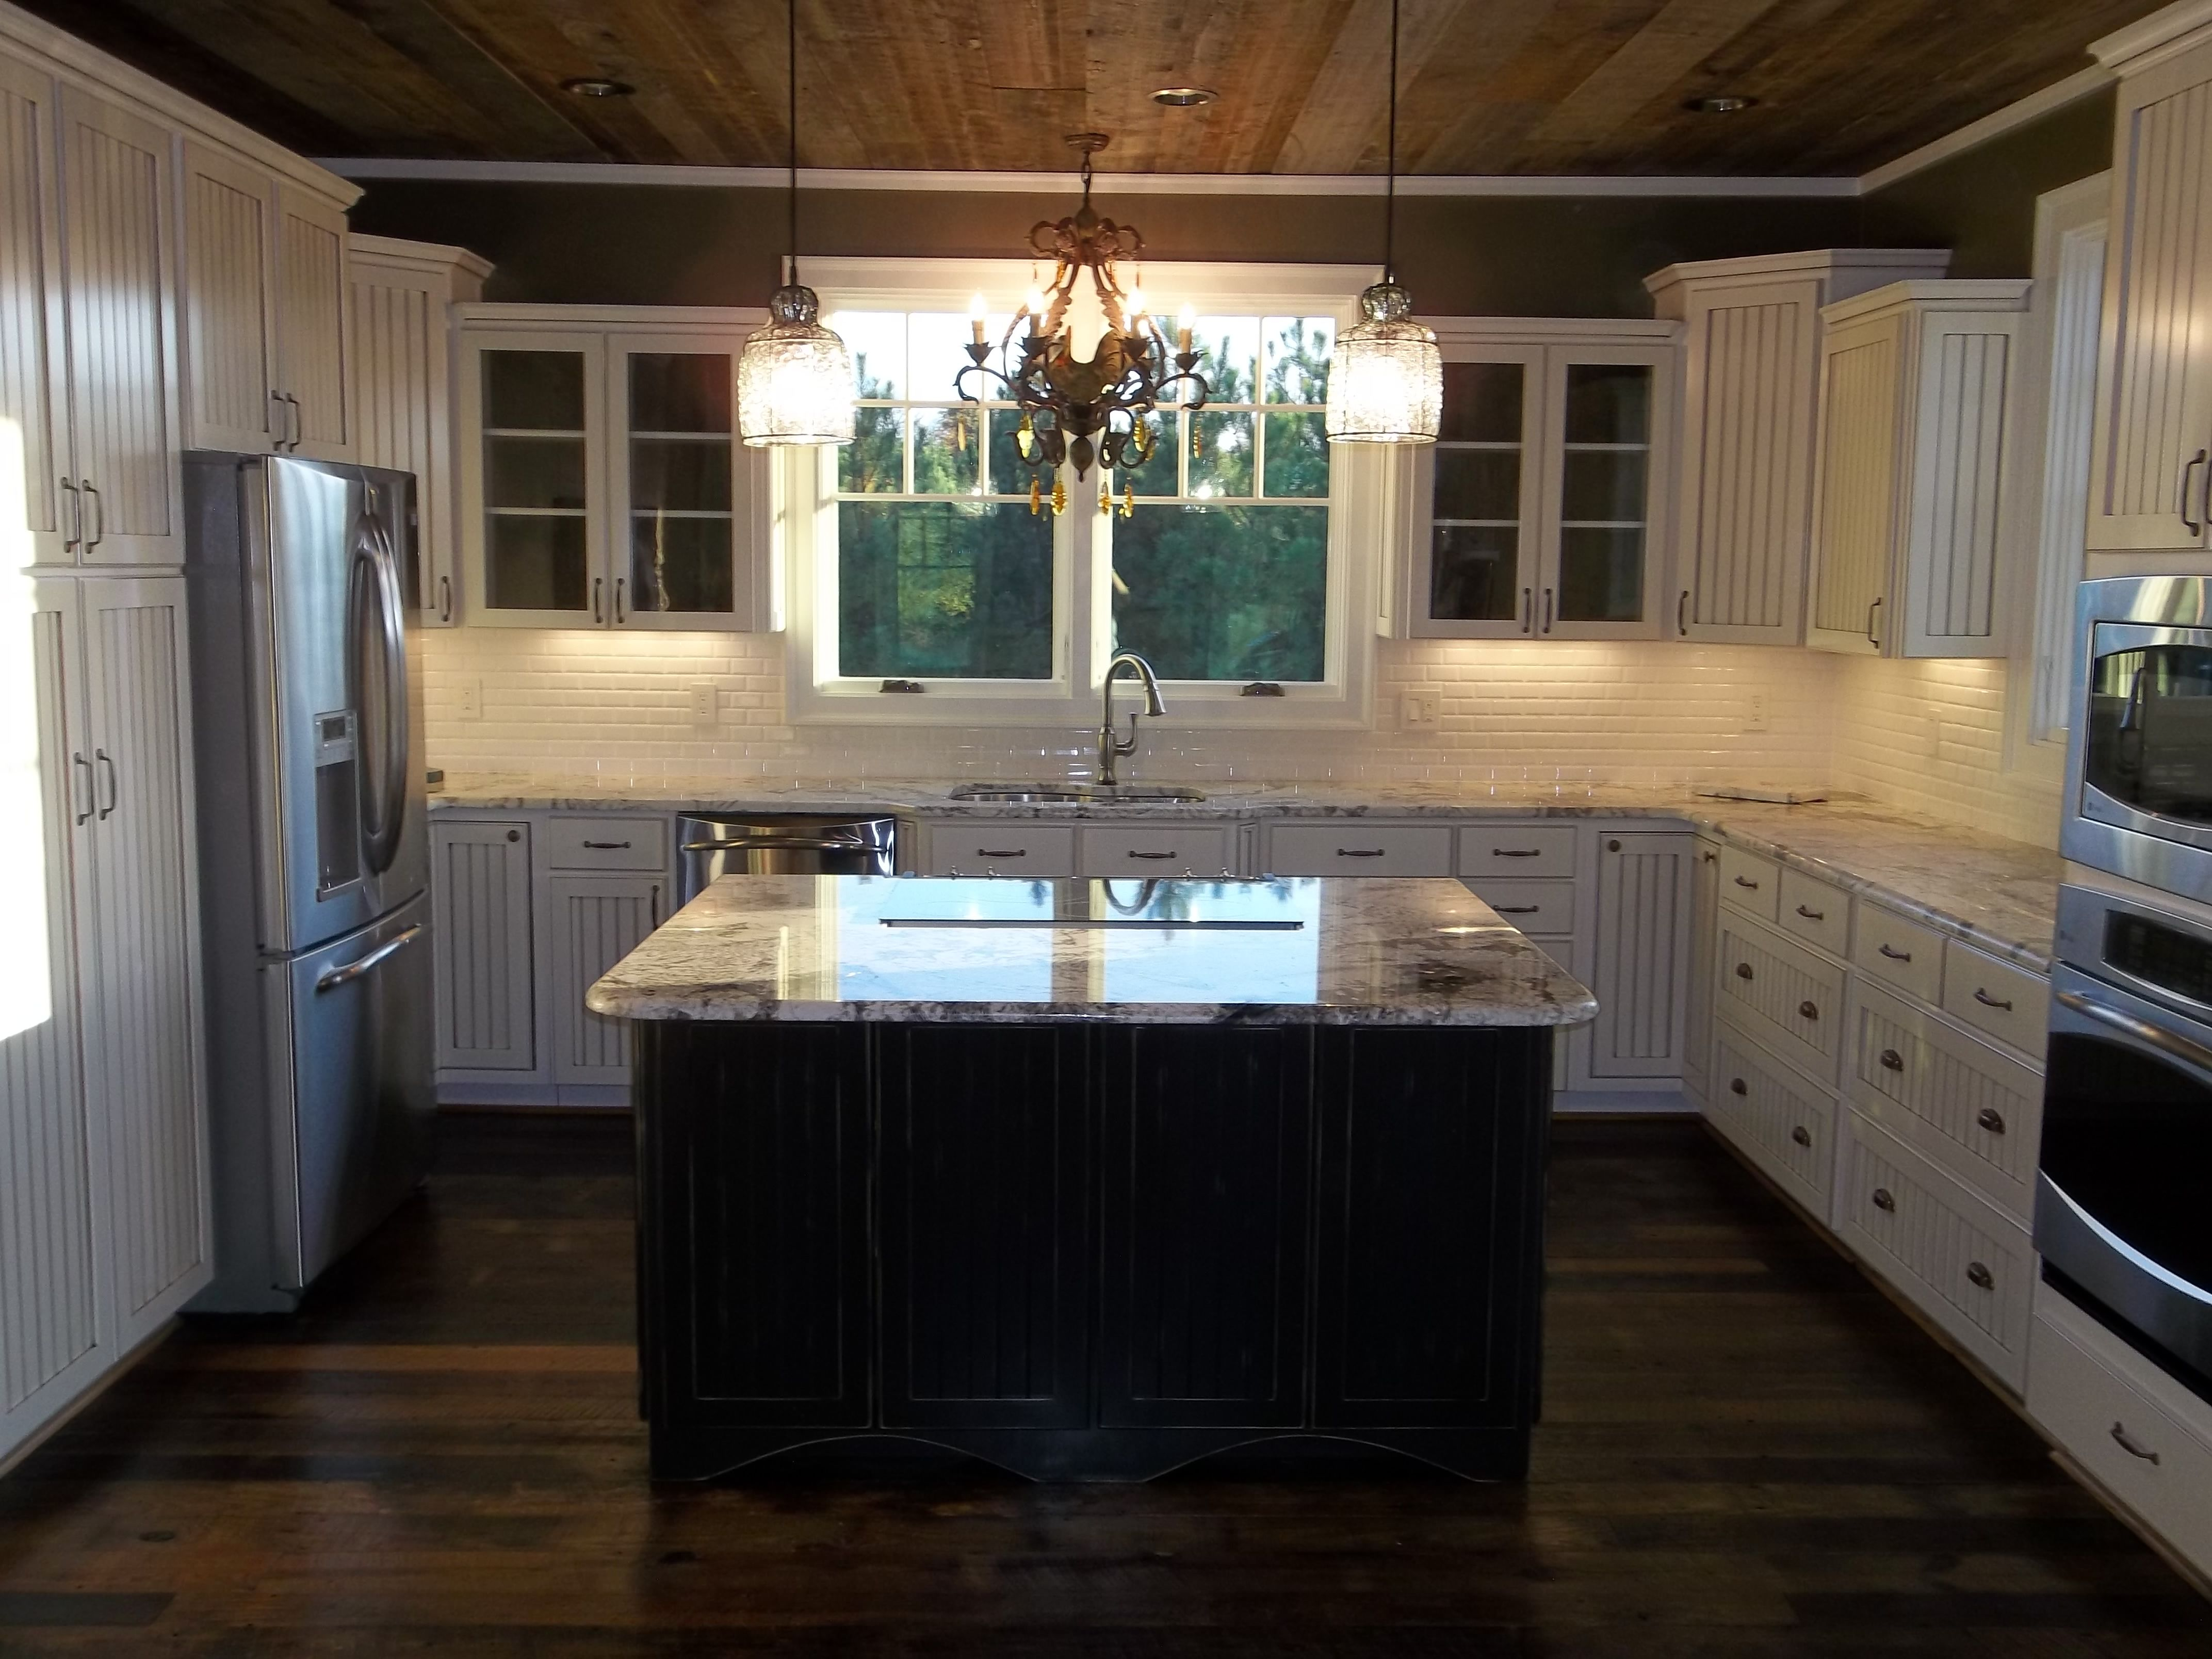 Kitchens Reclaimed Wood Ceiling   Custom Kitchen With Granite And Reclaimed  Wood On Ceiling And Floor